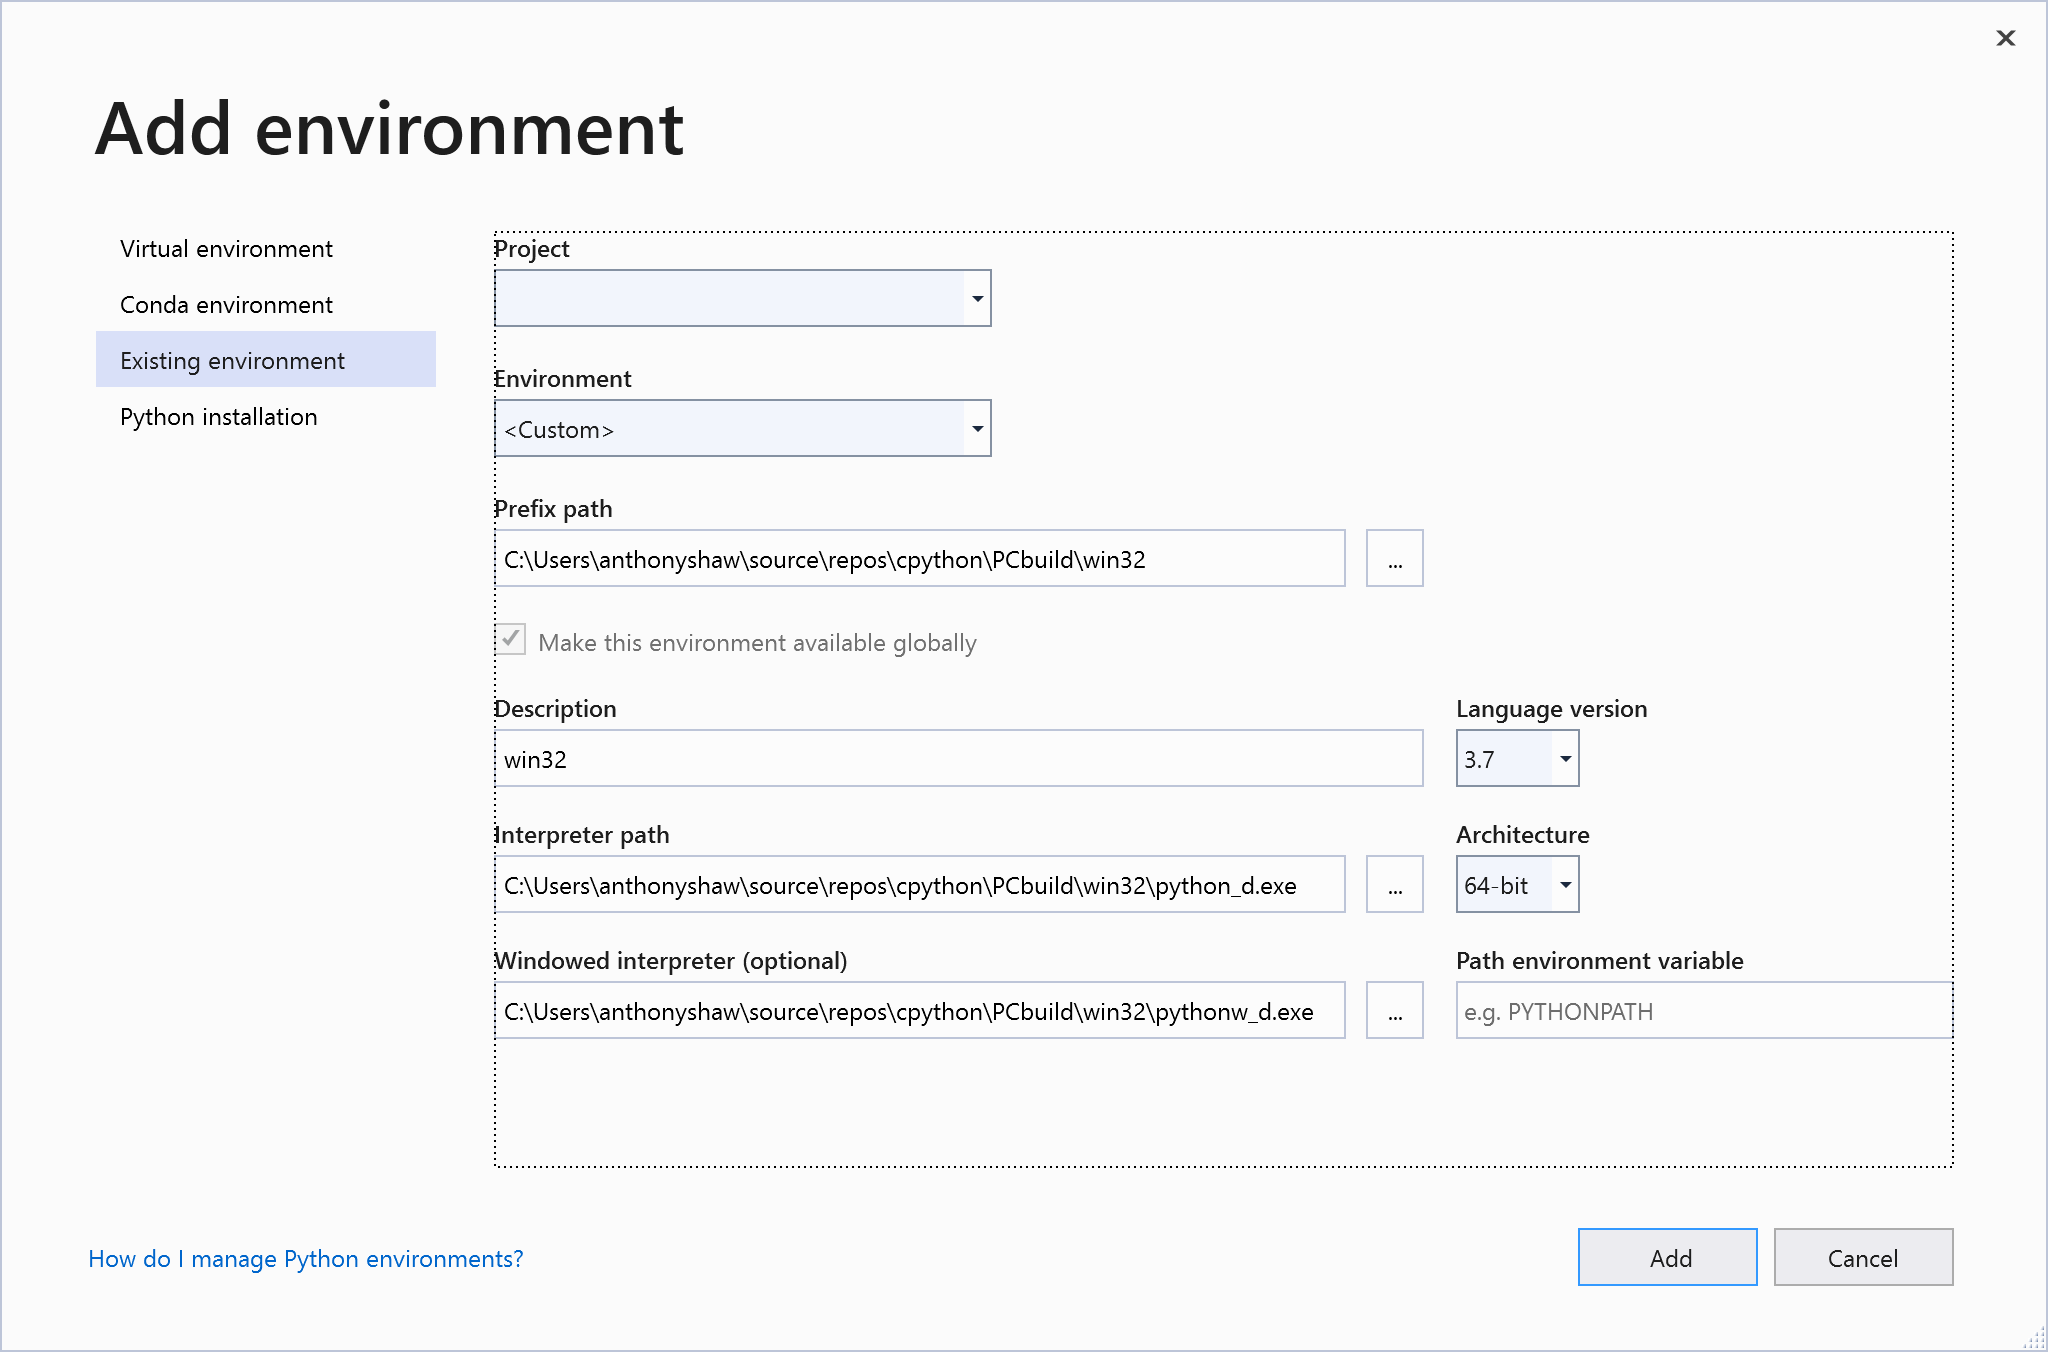 Adding an environment in VS2019